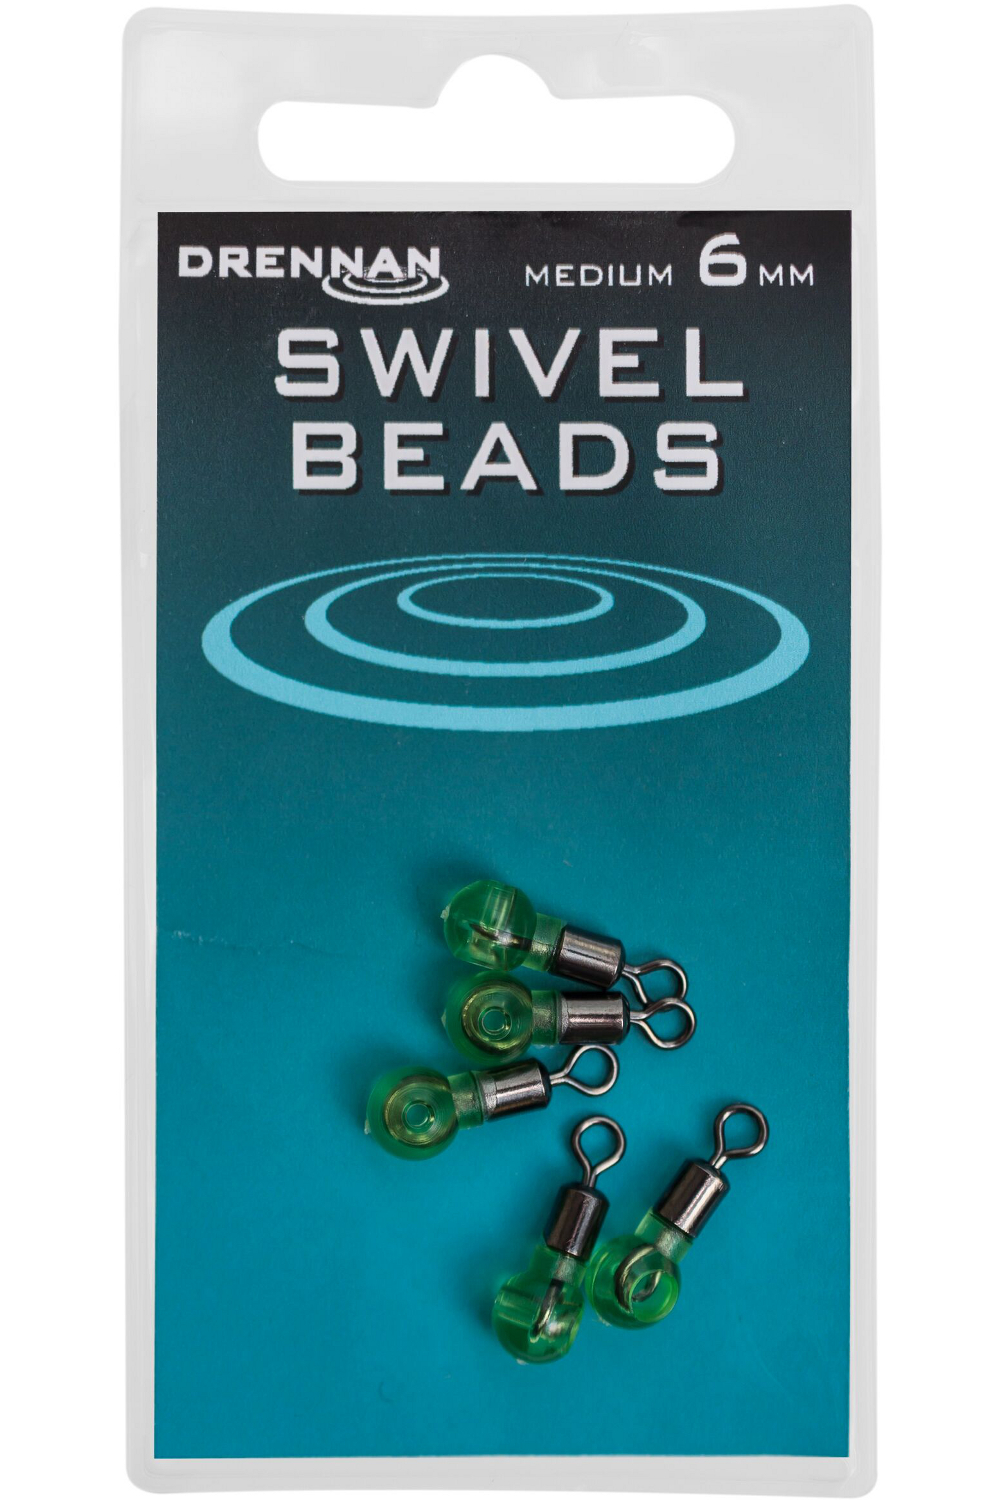 Вертлюг с бусиной Drennan Swivel Beads Medium 6 mm